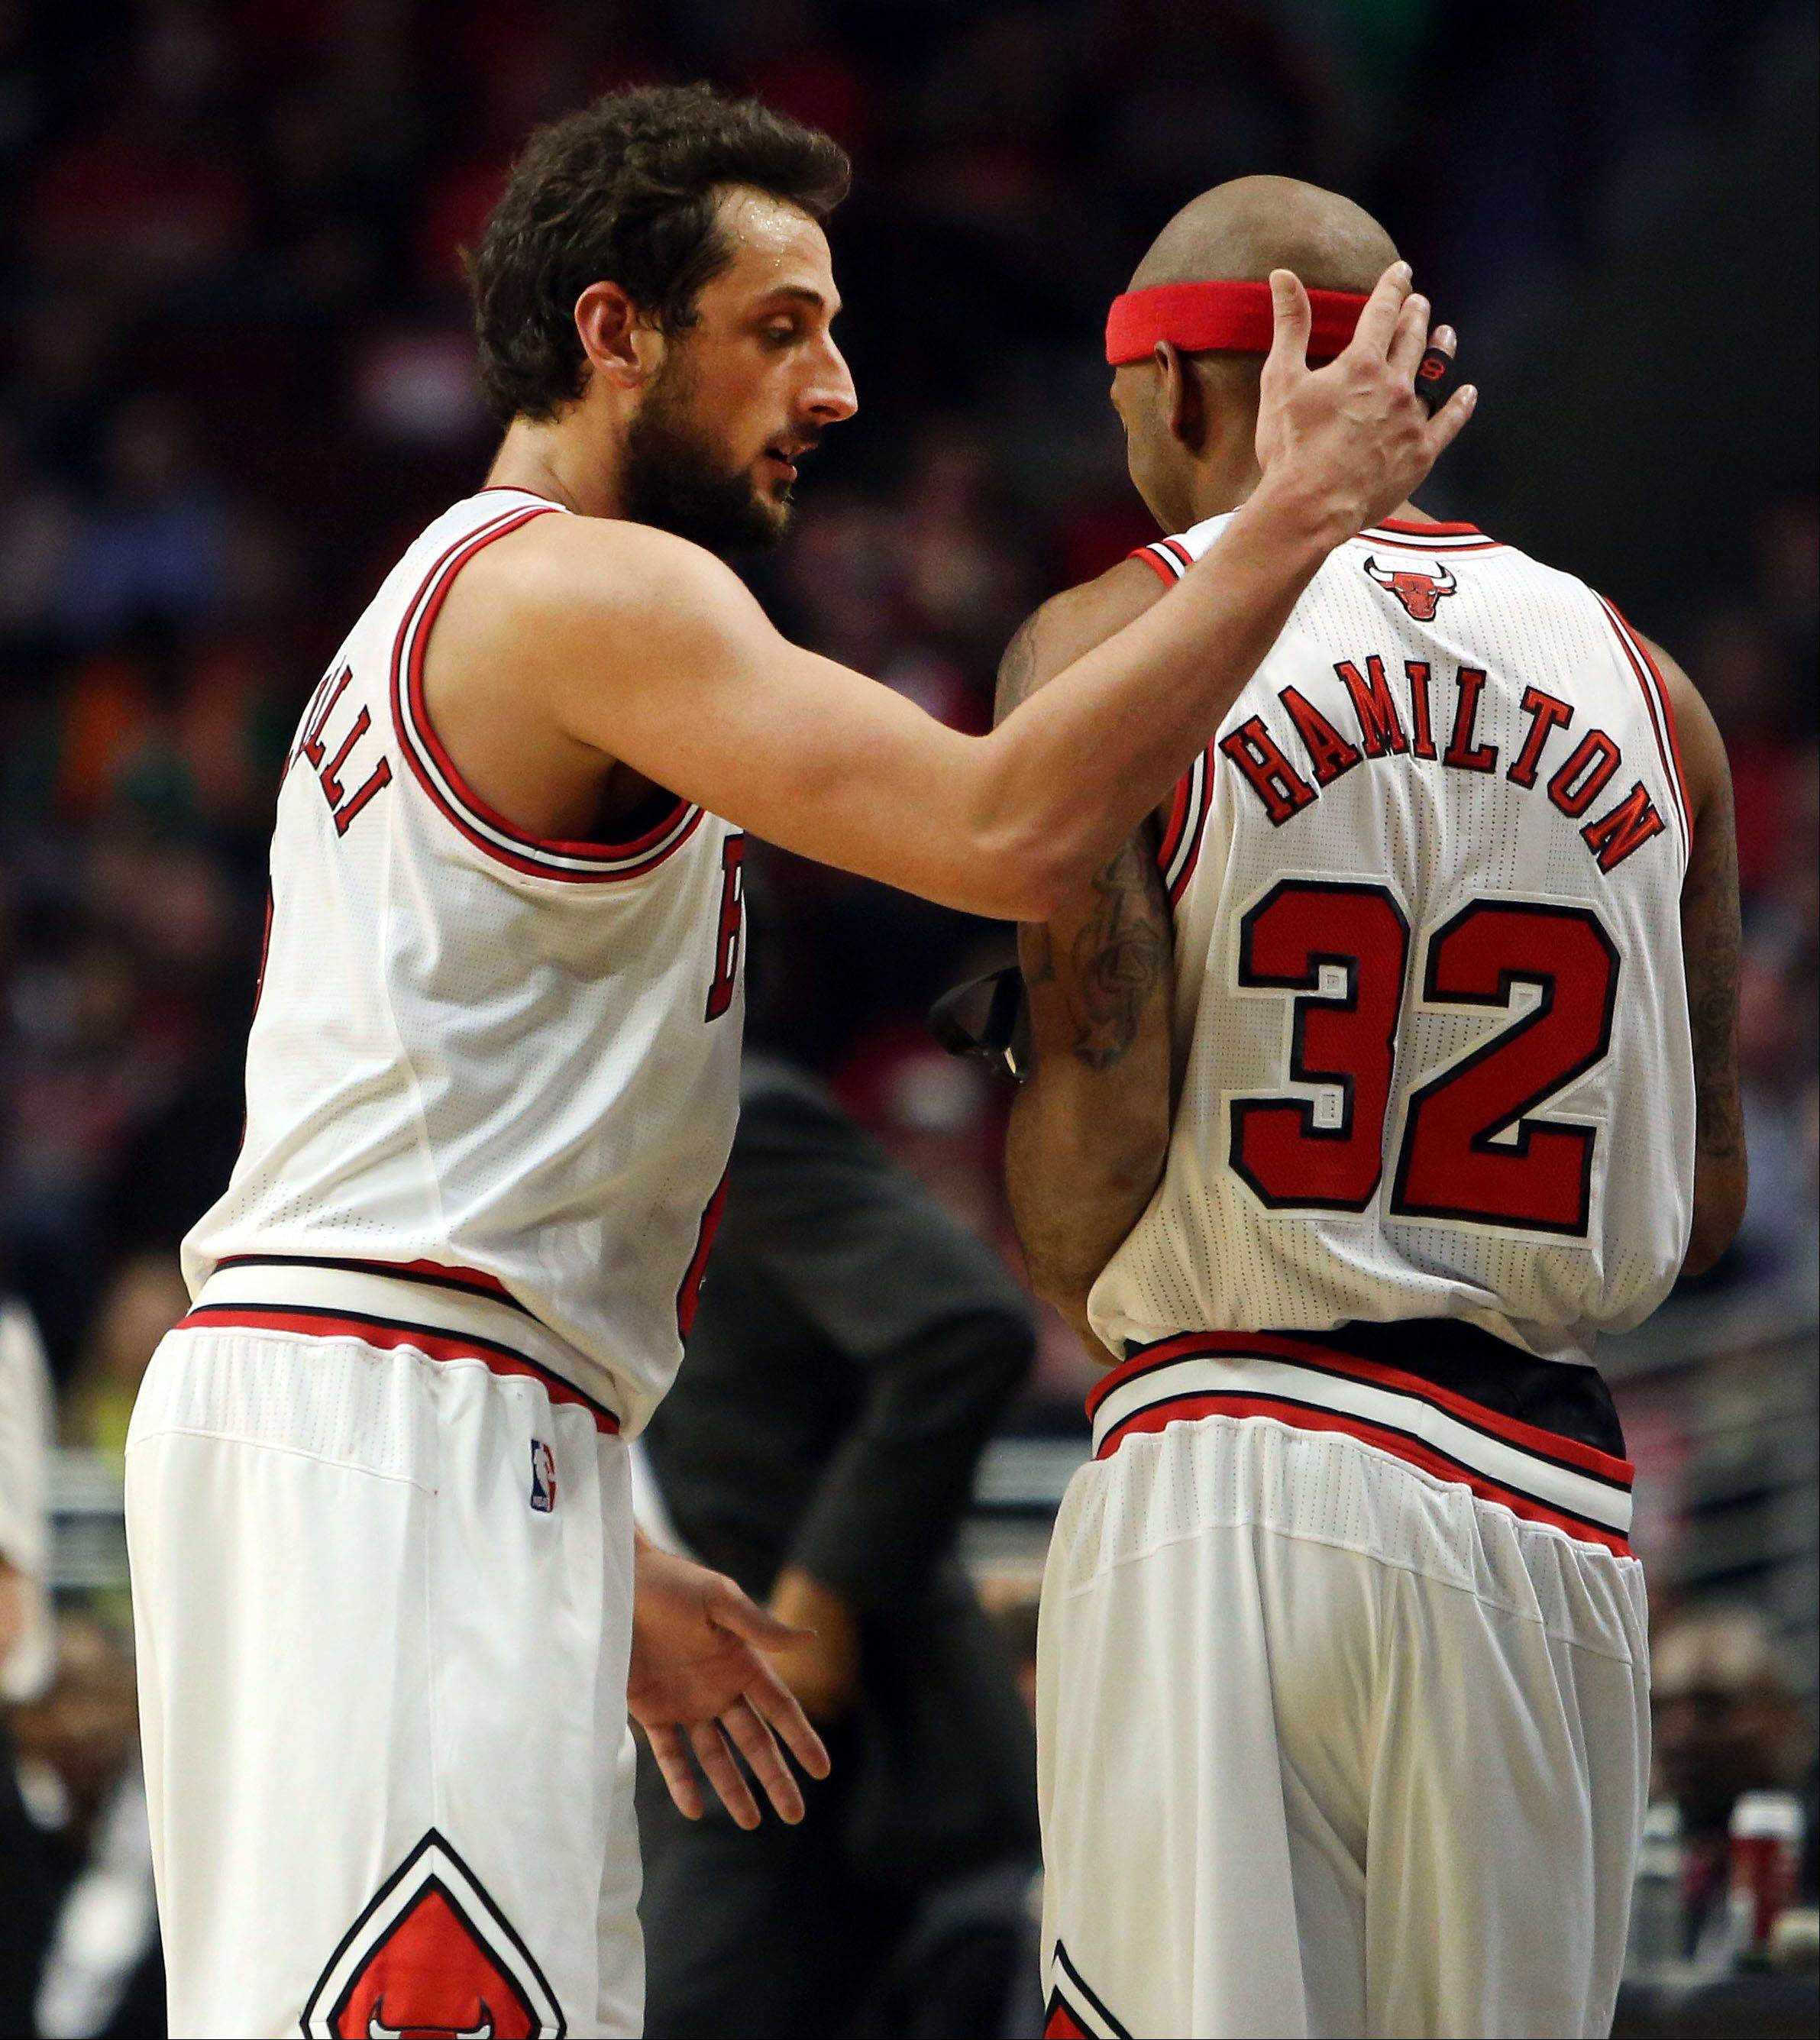 Chicago Bulls shooting guard Marco Belinelli welcomes Chicago Bulls shooting guard Richard Hamilton into the game .